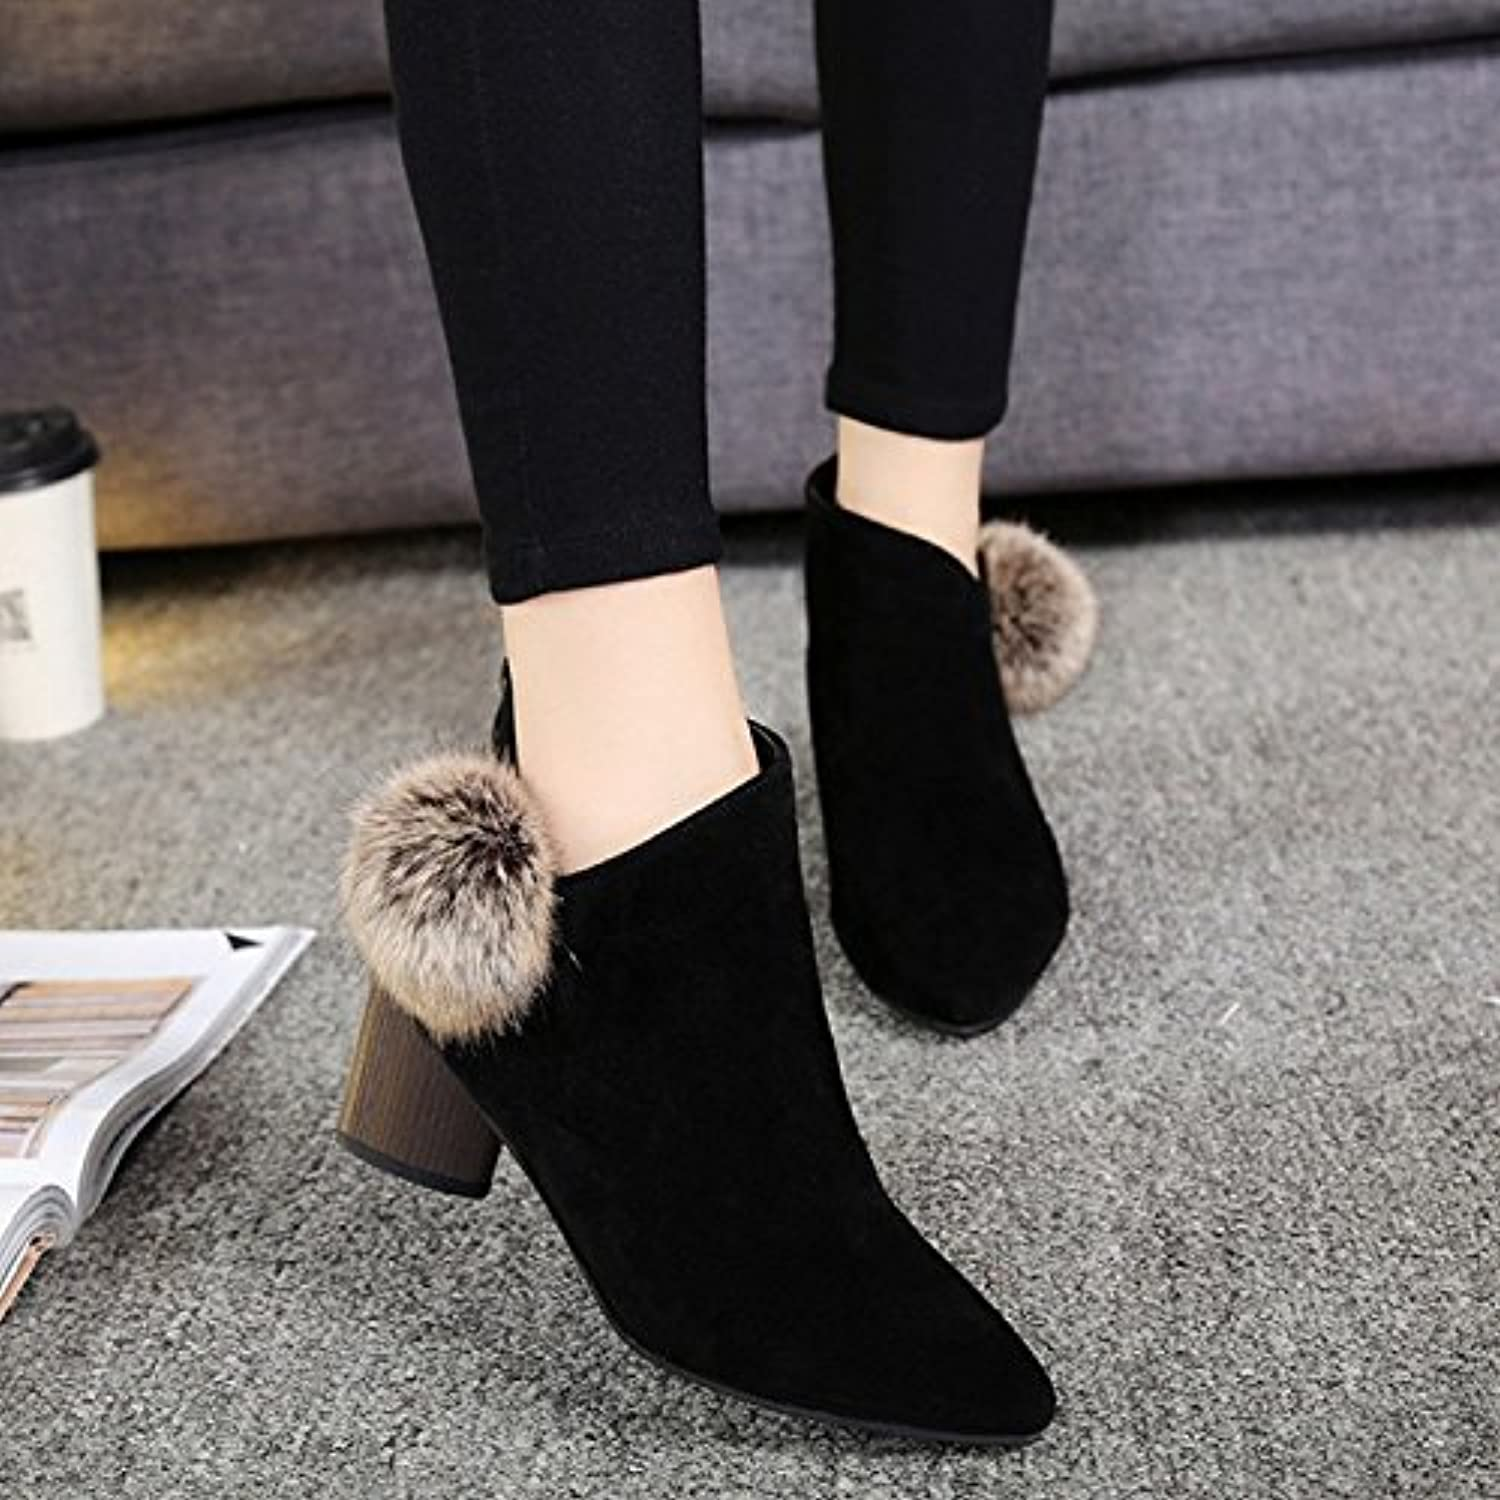 WYMBS Women's shoes Rough Short Boots Autumn Winter Pointed Puffer Ball Martin Boots High-Heeled Scrub Female Boots,Black,36